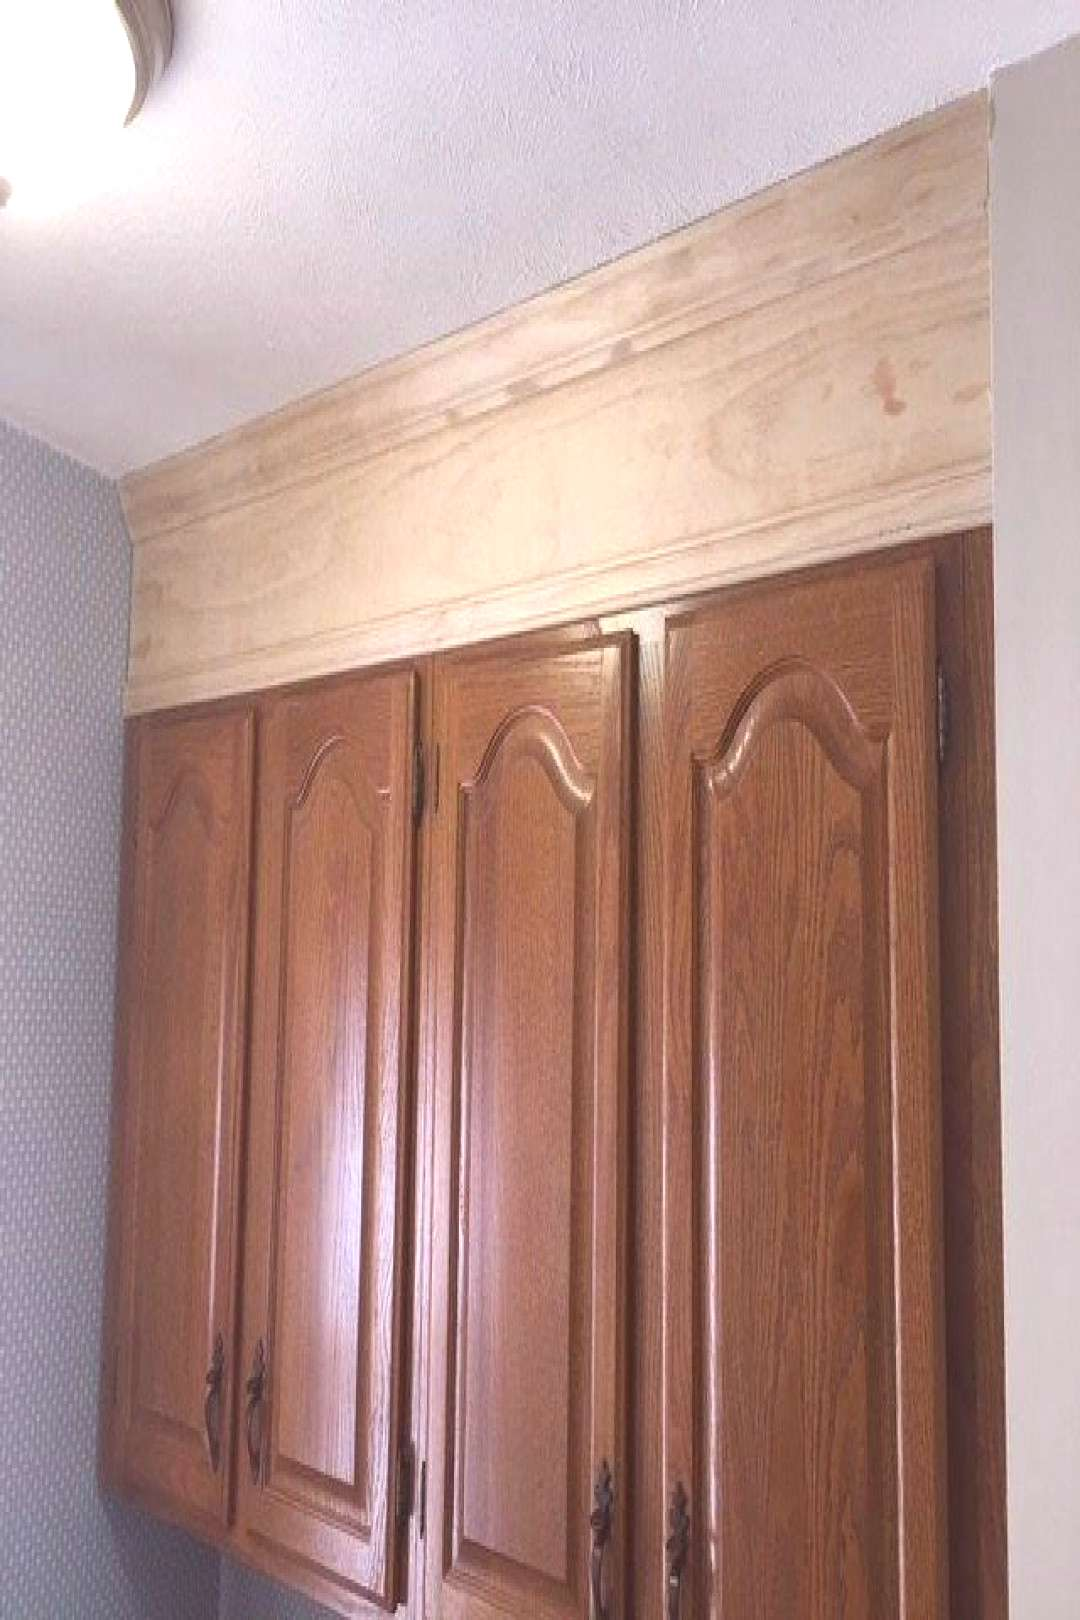 Cabinets to ceiling - Kitchen cabinets to ceiling - Kitchen soffit - Above ki...#cabinets